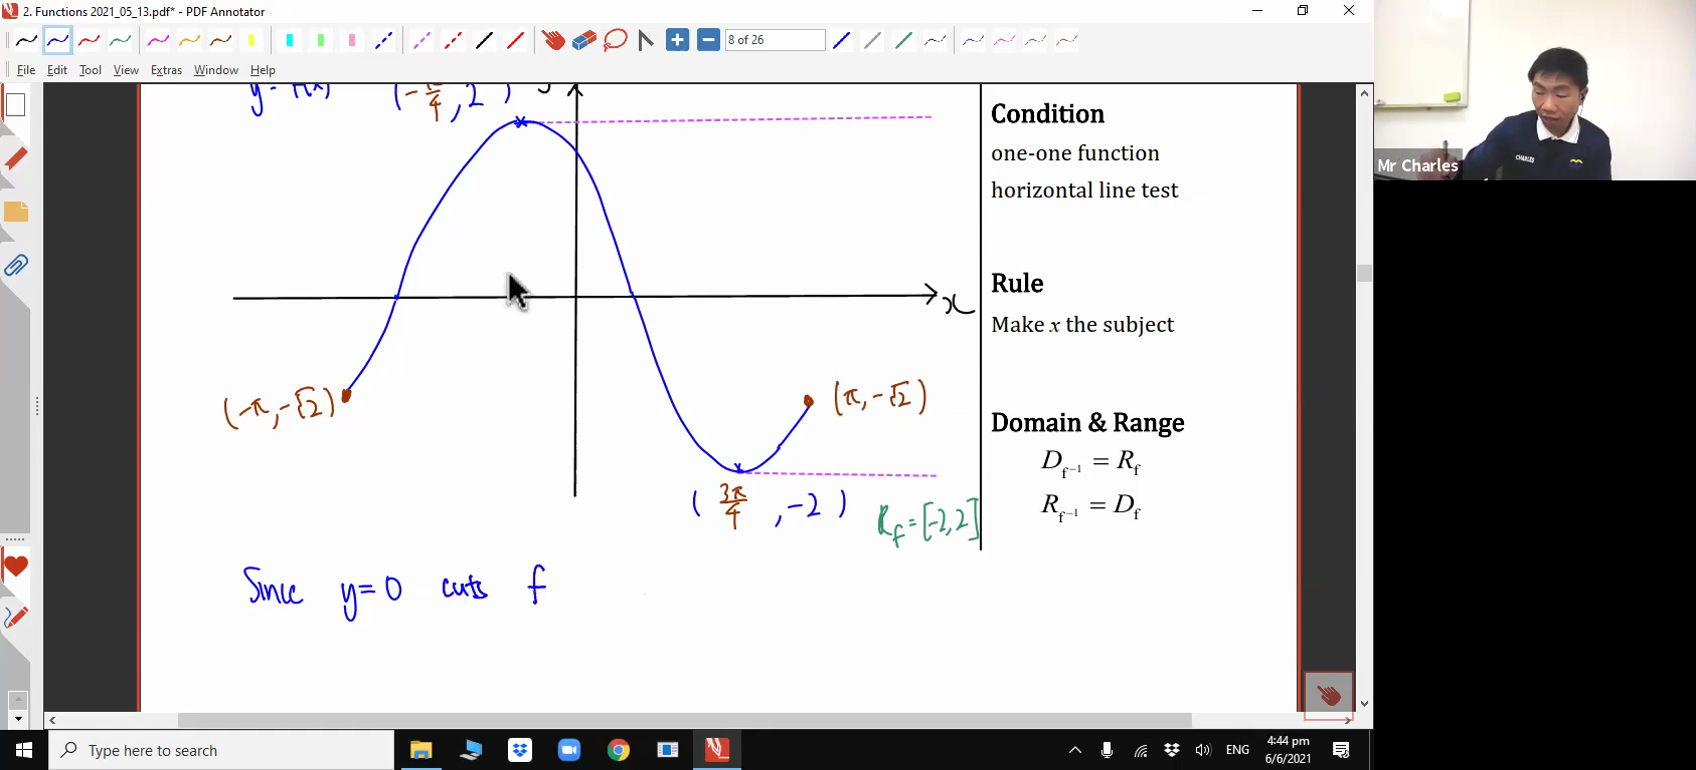 [FUNCTIONS] Inverse Functions